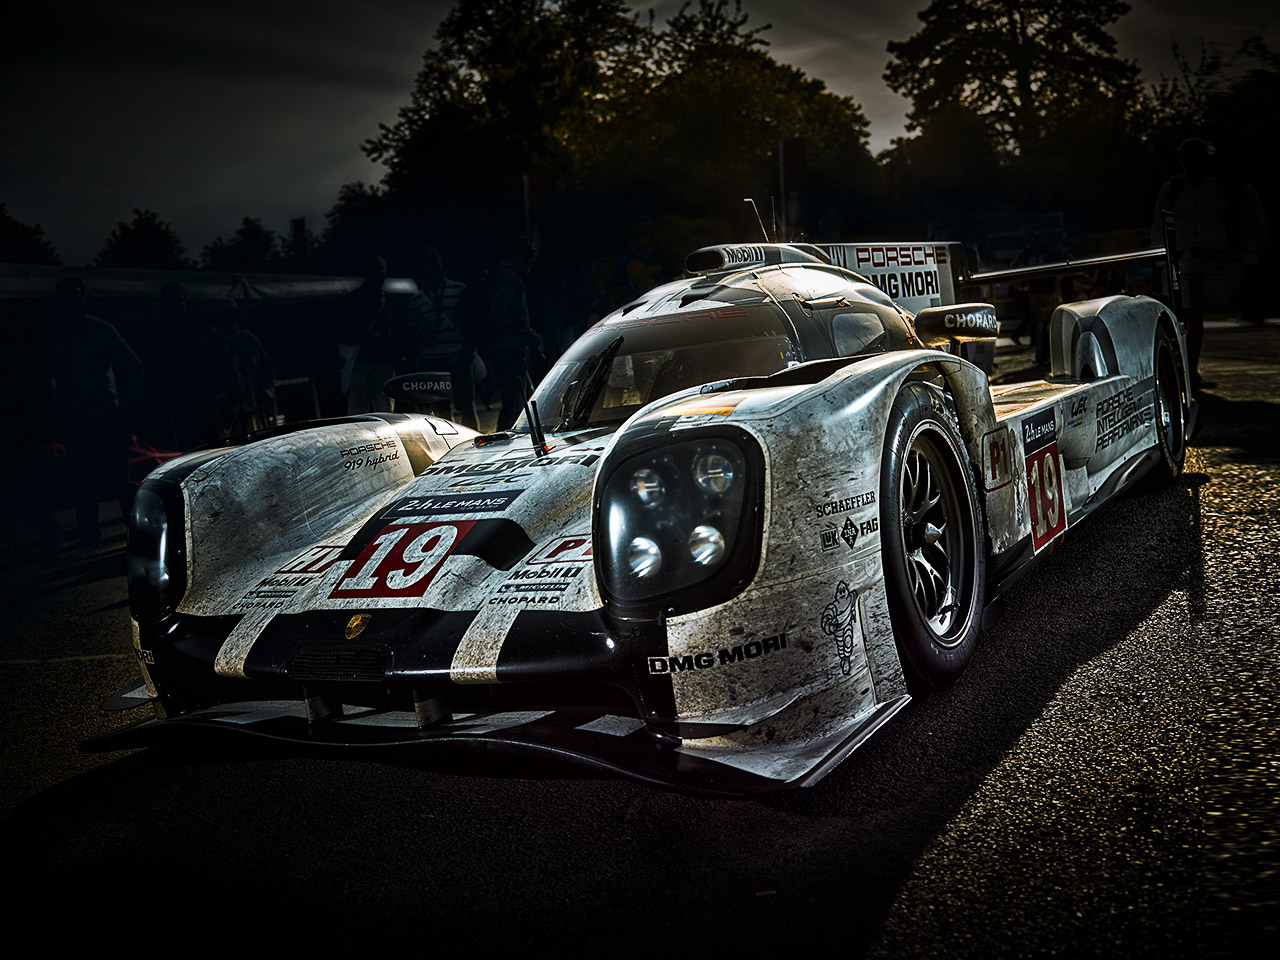 Porsche The Mission Future Sportscar: For the moment